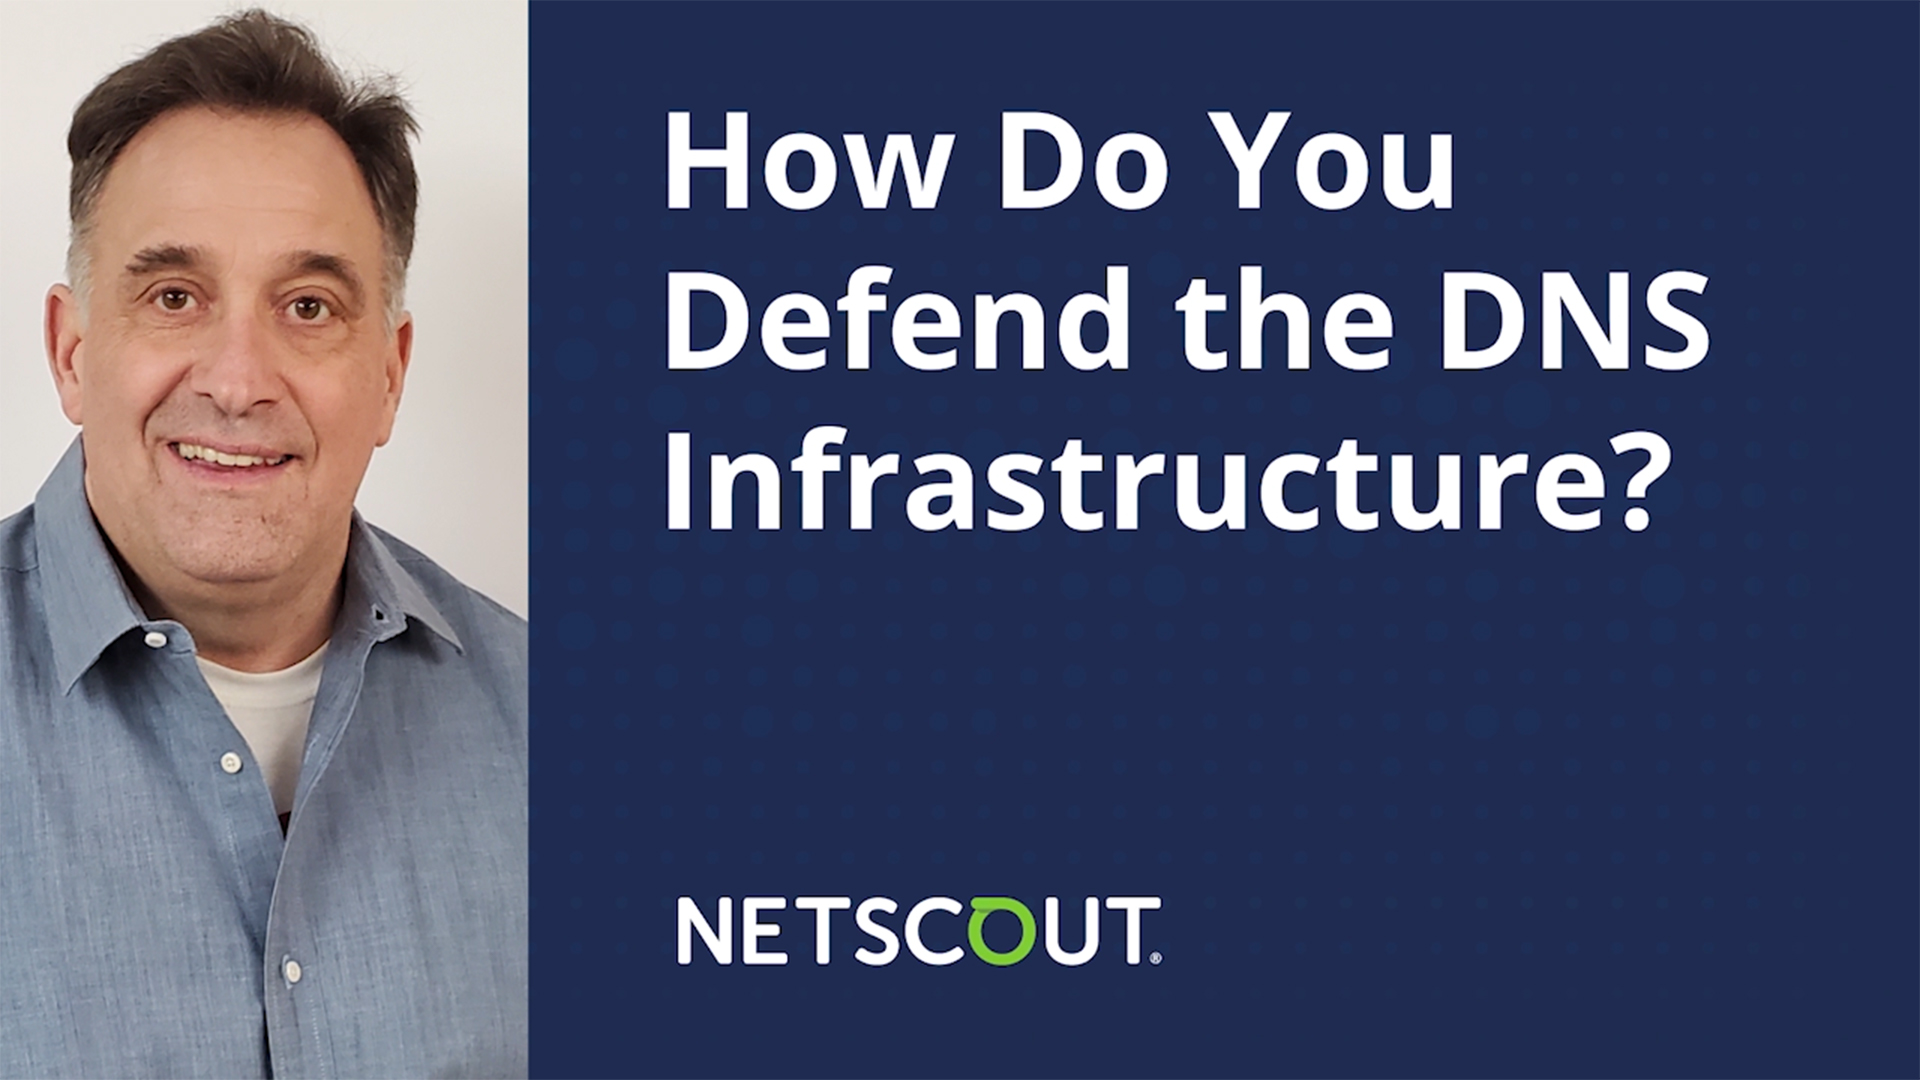 How Do You Defend the DNS Infrastructure?